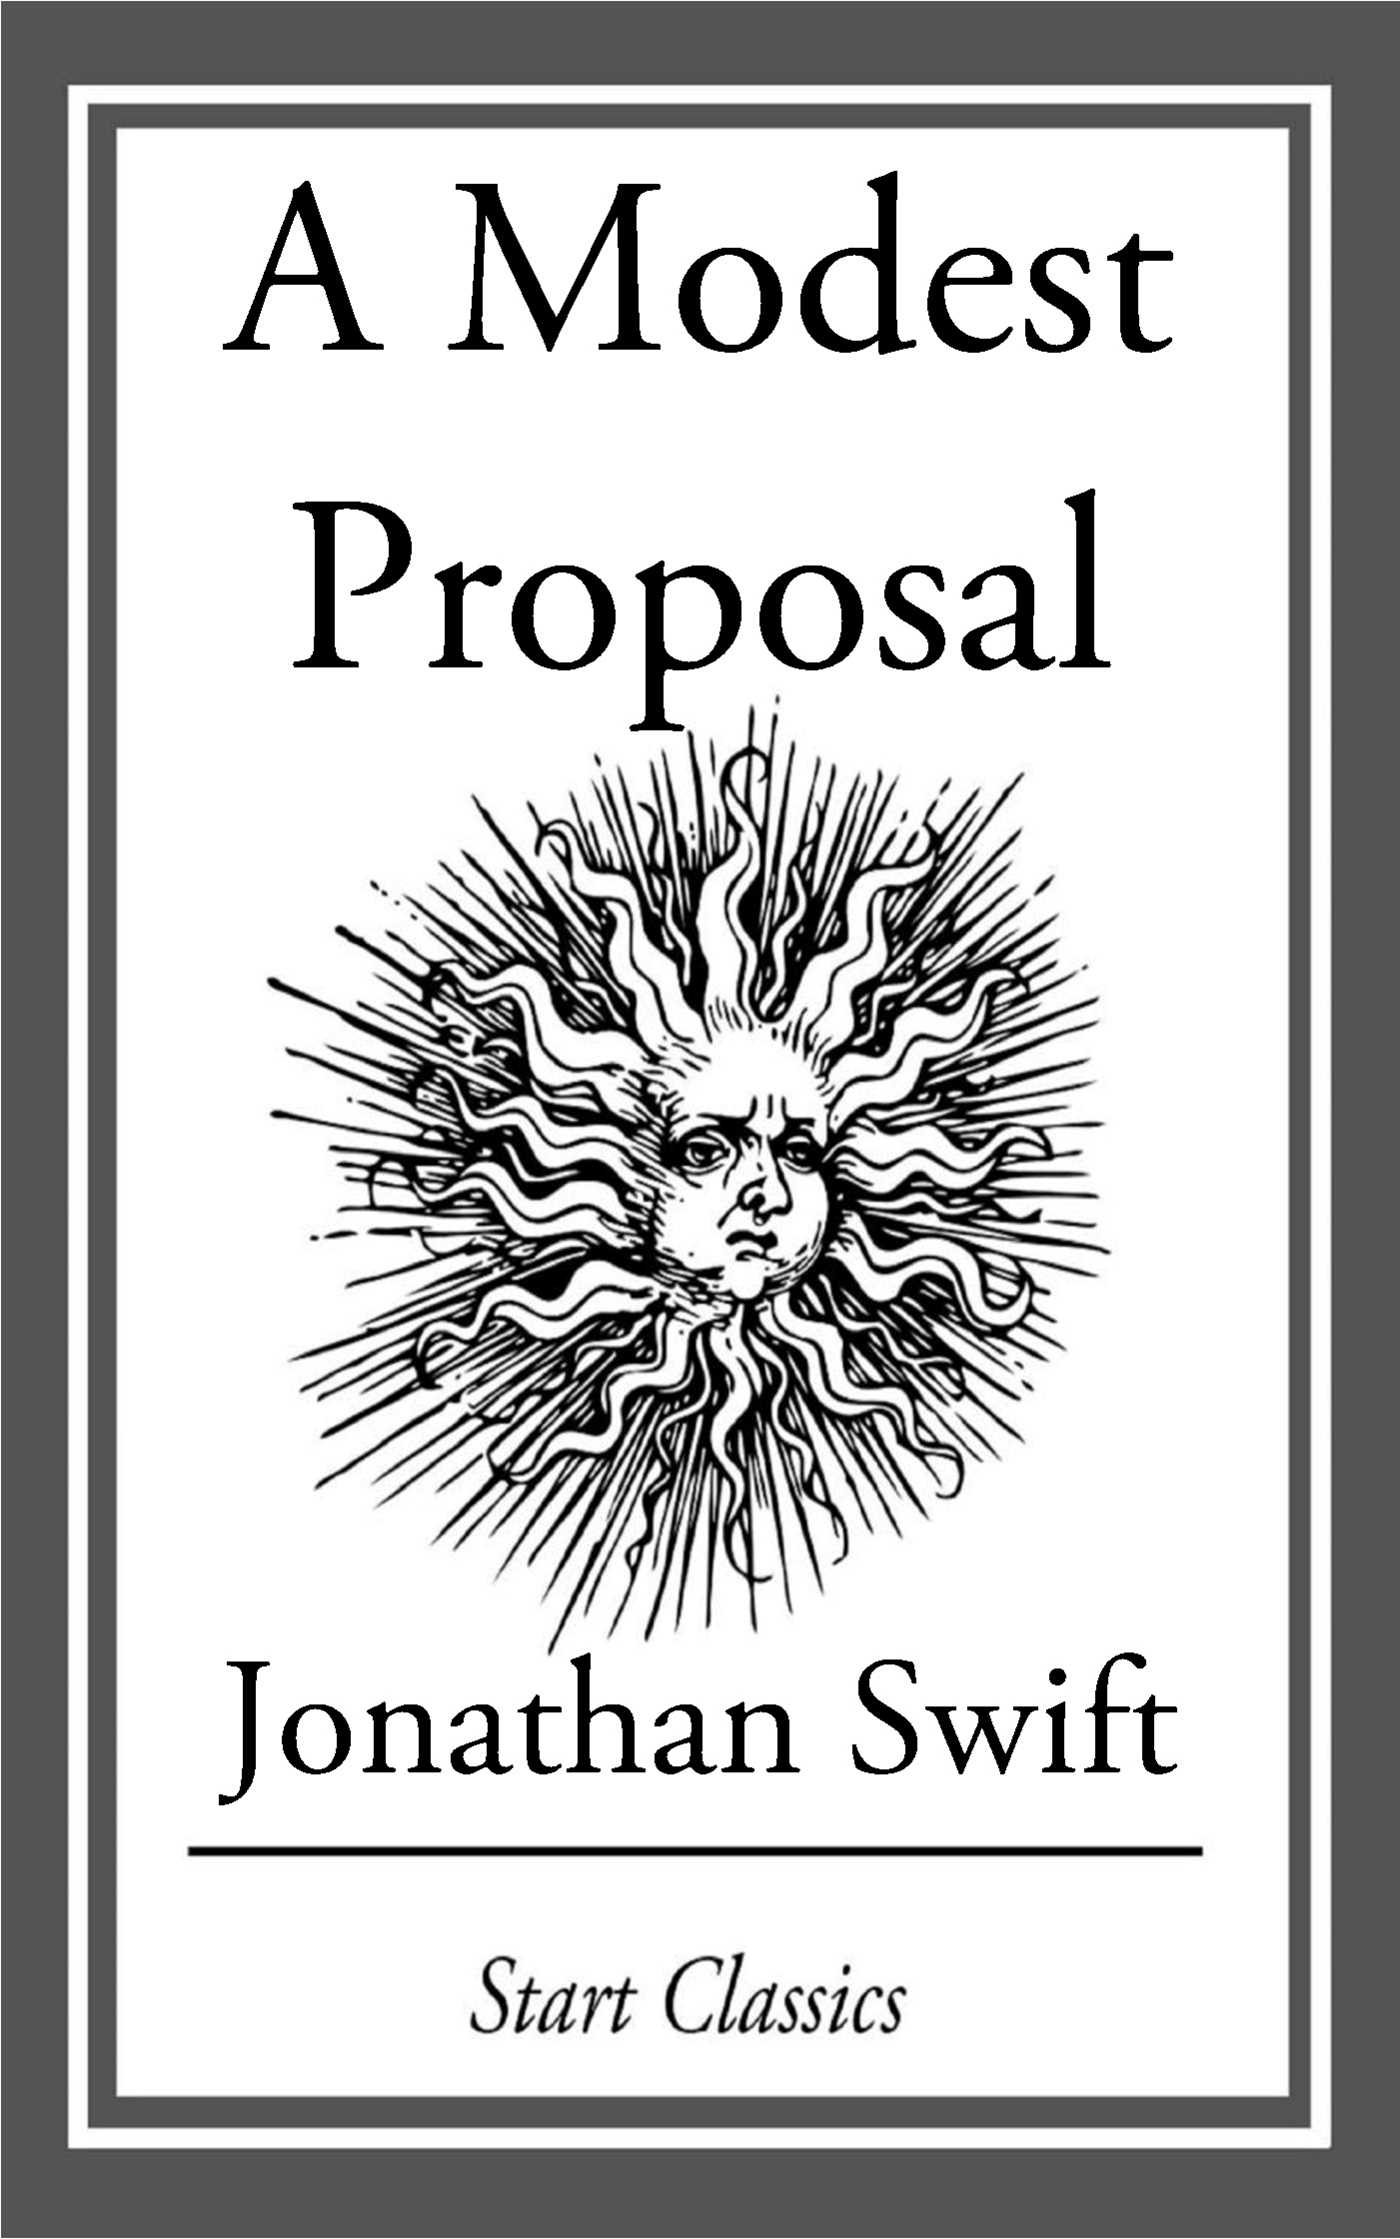 a modest proposal rhetorical analysis essay Rhetorical analysis: a modest proposal jonathan swift was an irish author who had a bachelor's degree from trinity college he was born poor, but his.